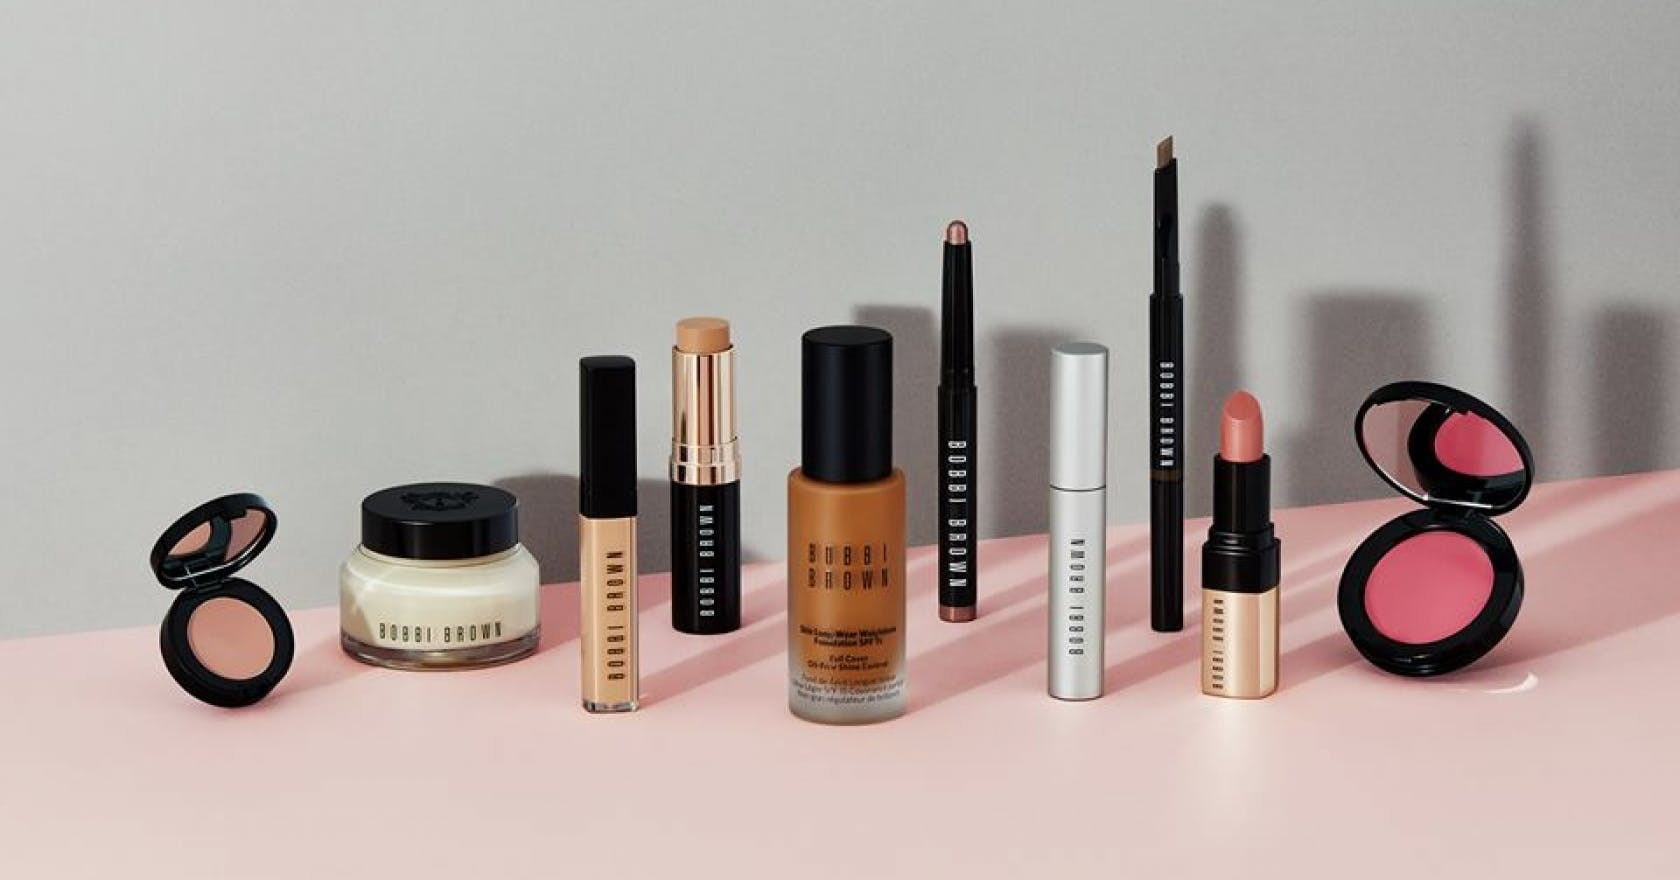 Bobbi Brown #CantLiveWithout Products